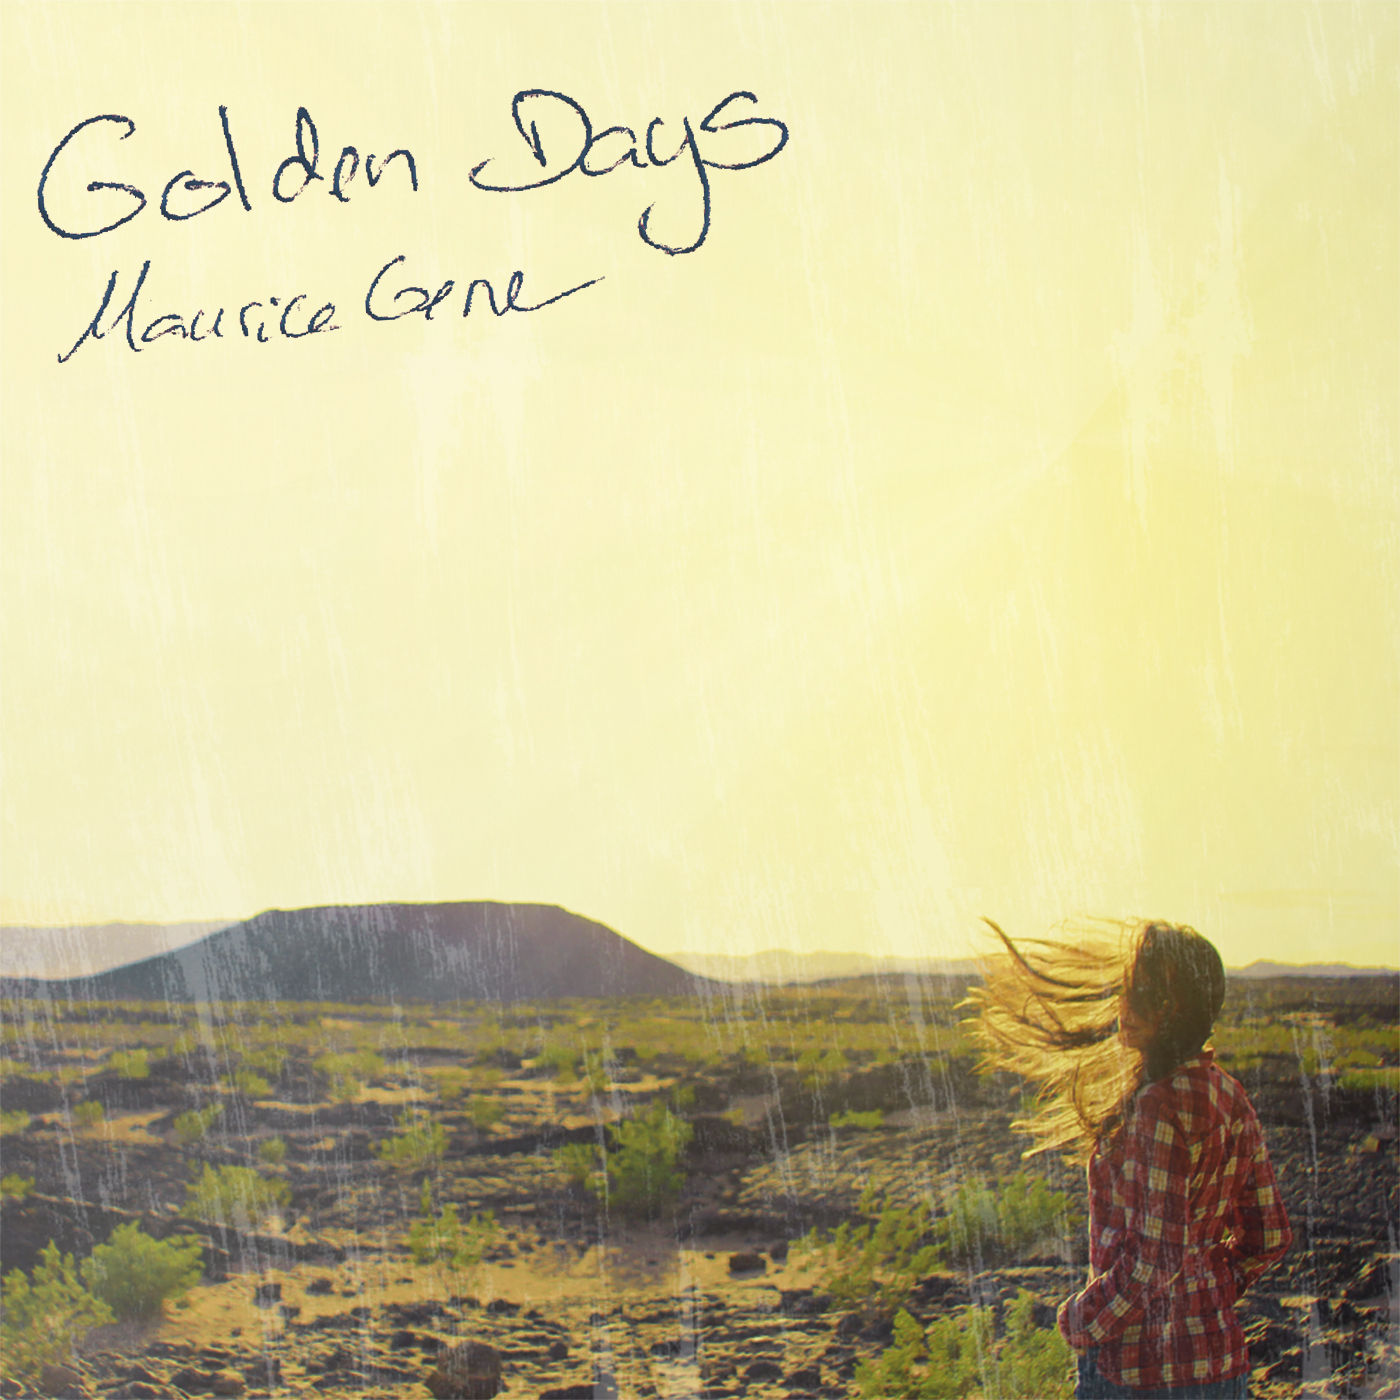 Golden Days Album Art